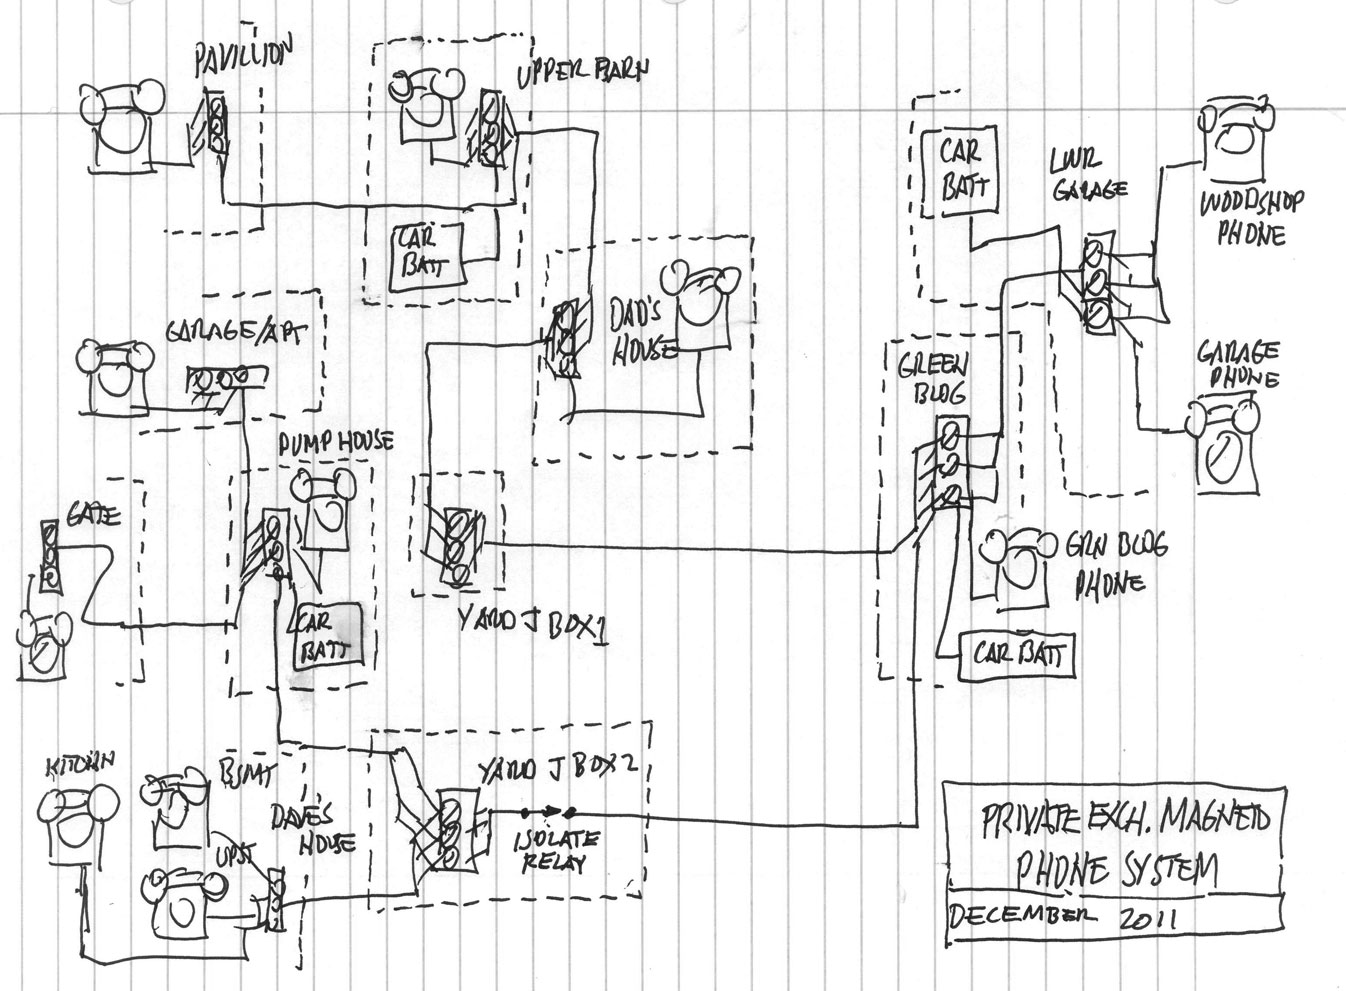 phonesysdiag leich phone Residential Telephone Wiring Diagram at cos-gaming.co